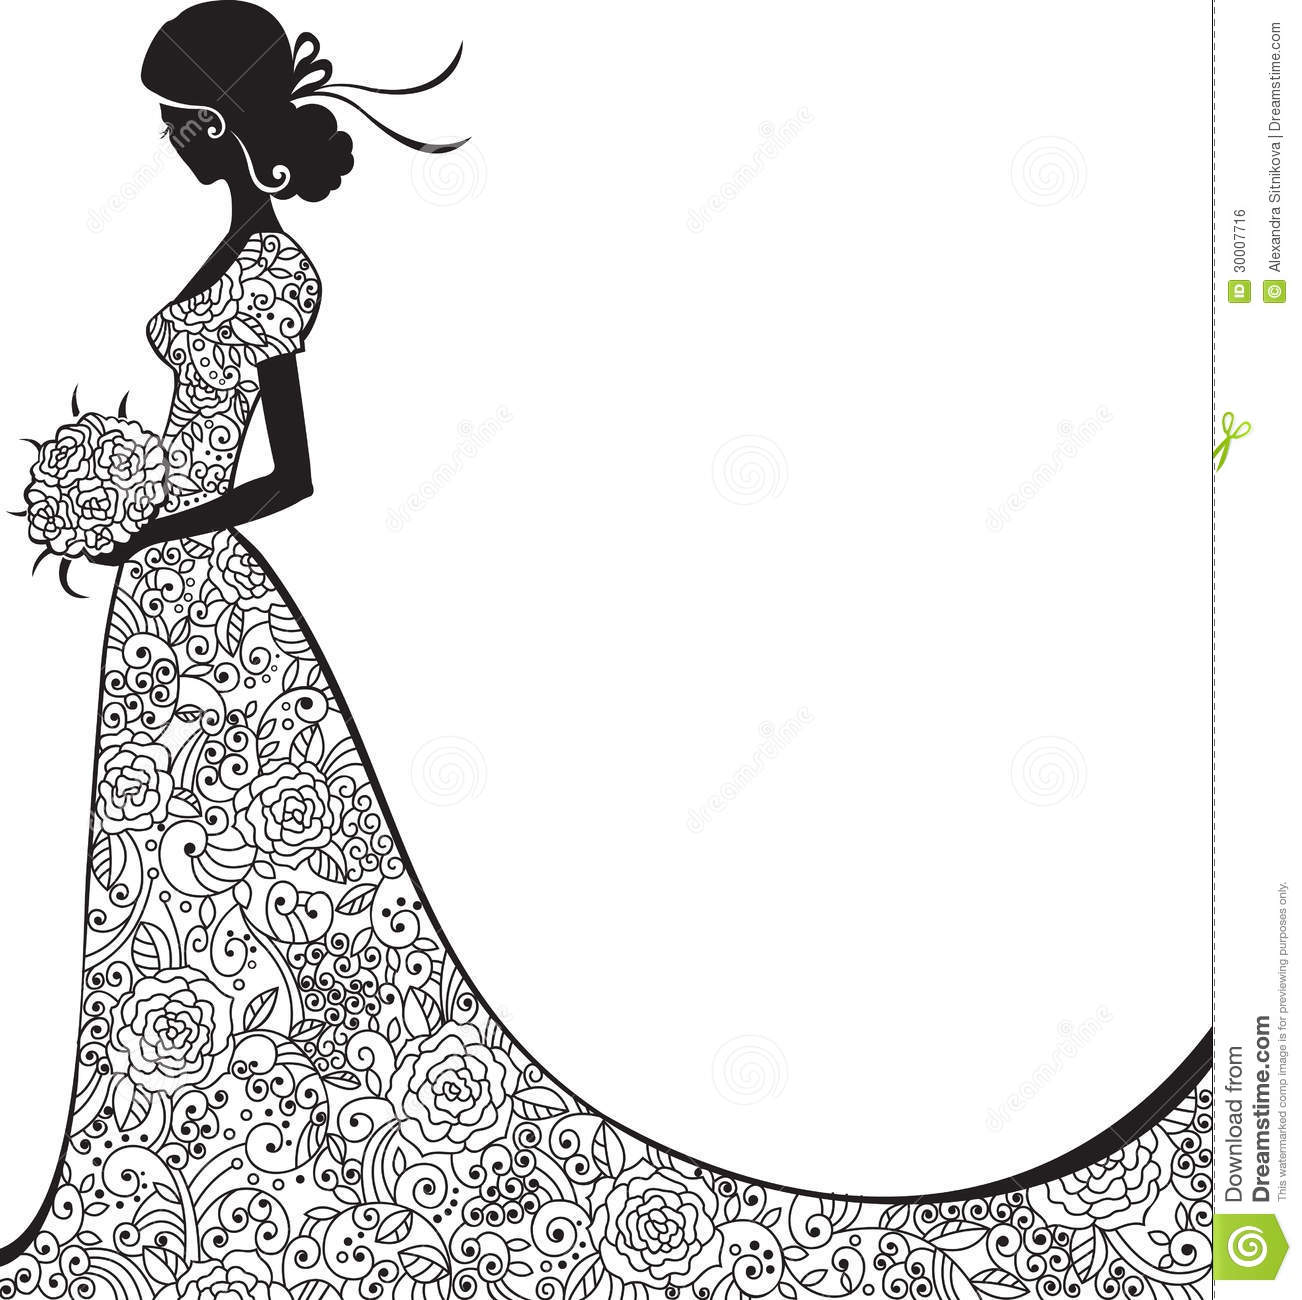 Gown clipart elegant dress White and Mandalas Поиск Card